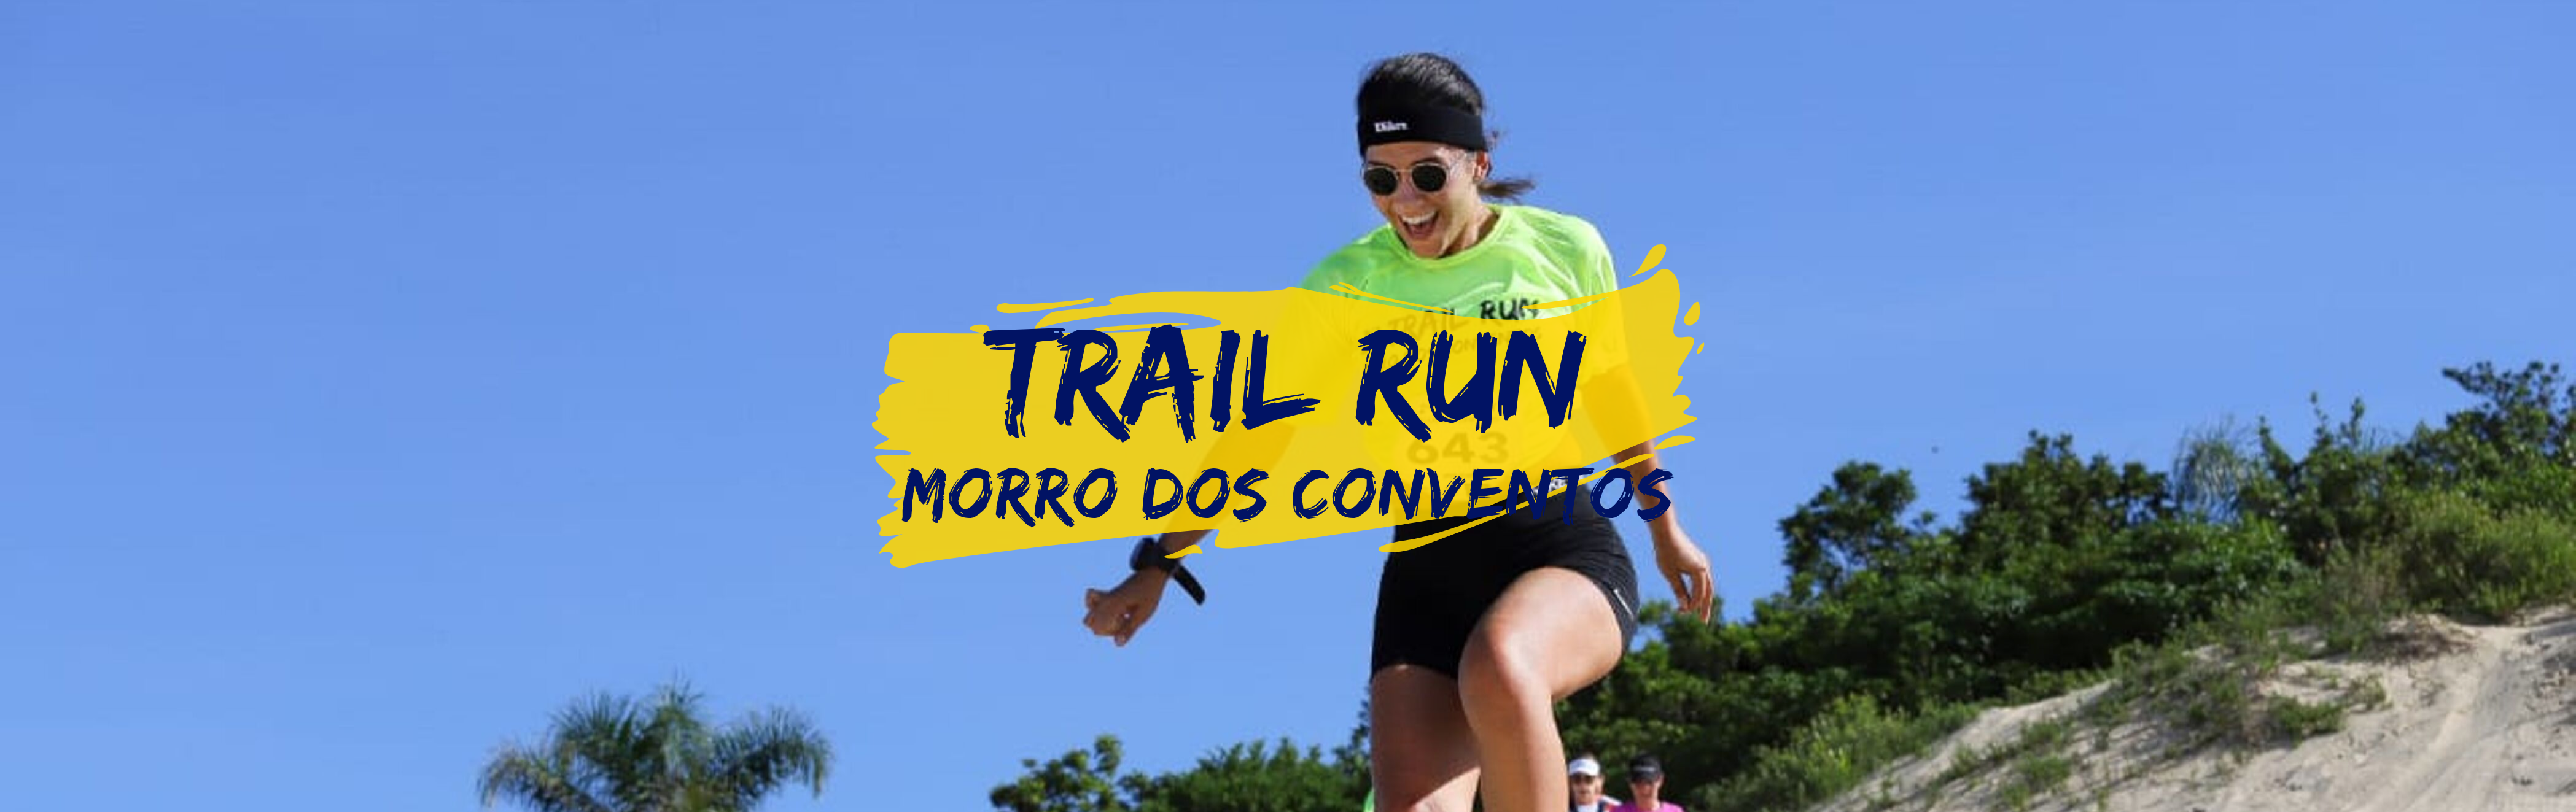 Trail Run Morro dos Conventos